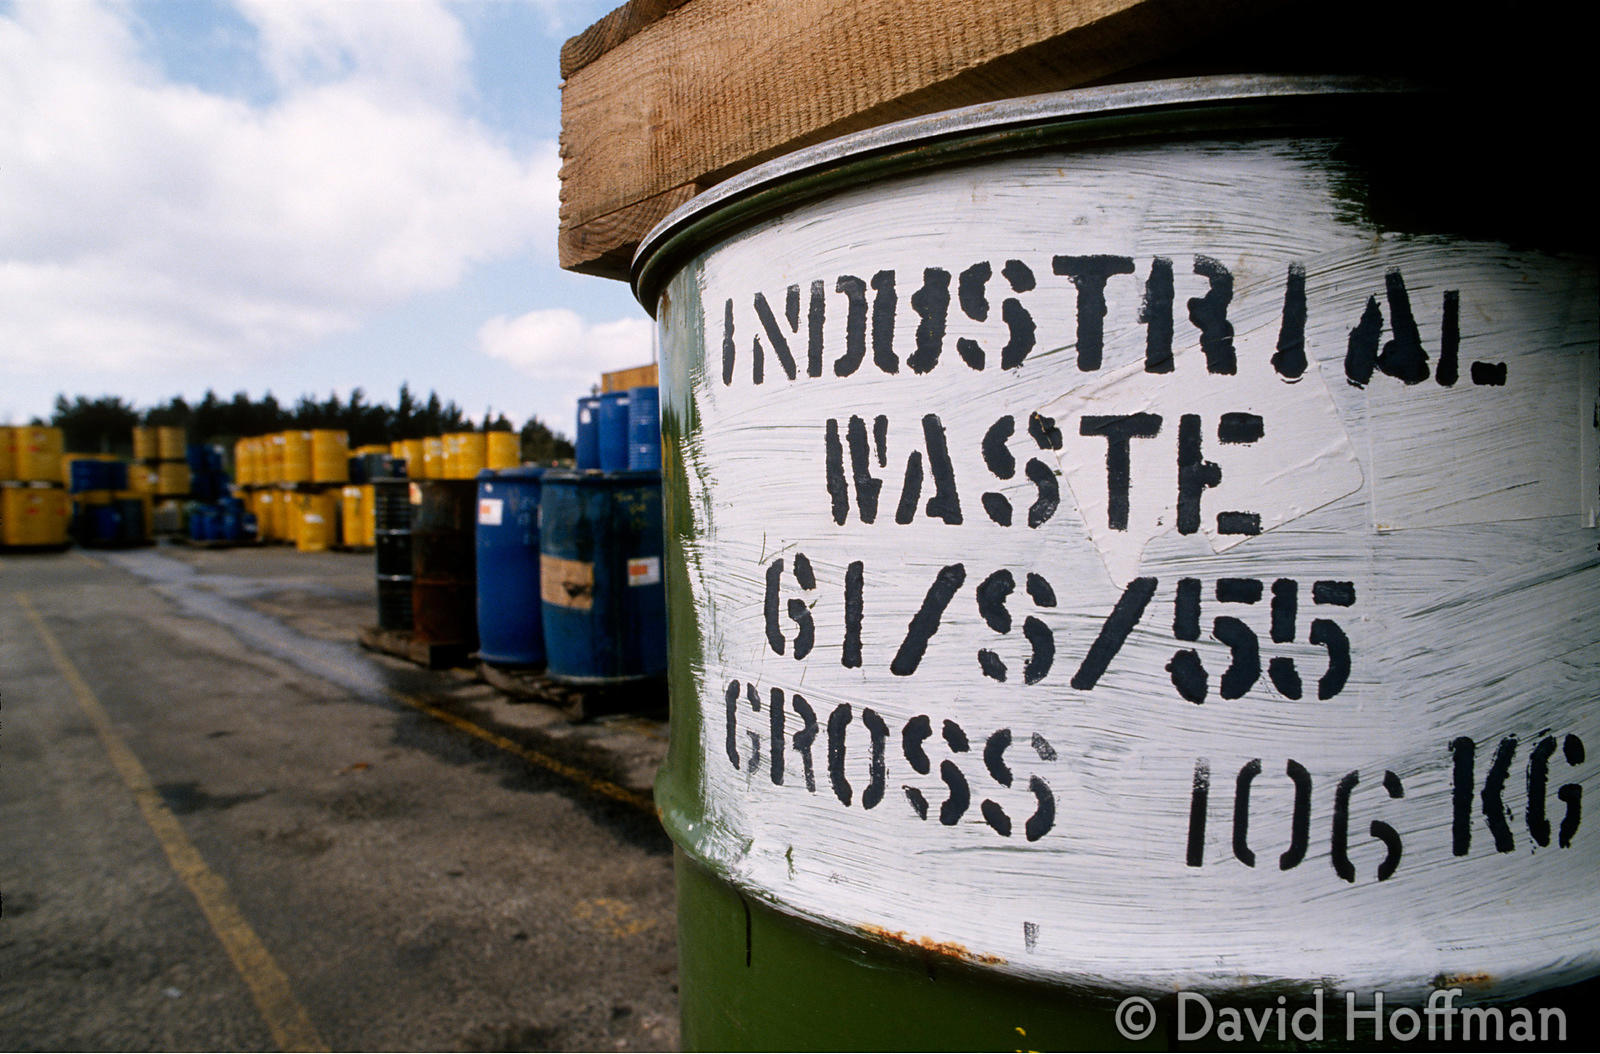 1.0614/520 Drums of industrial waste stored awaiting incineration at the Rechem plant, Fawley, Southampton. 1993.